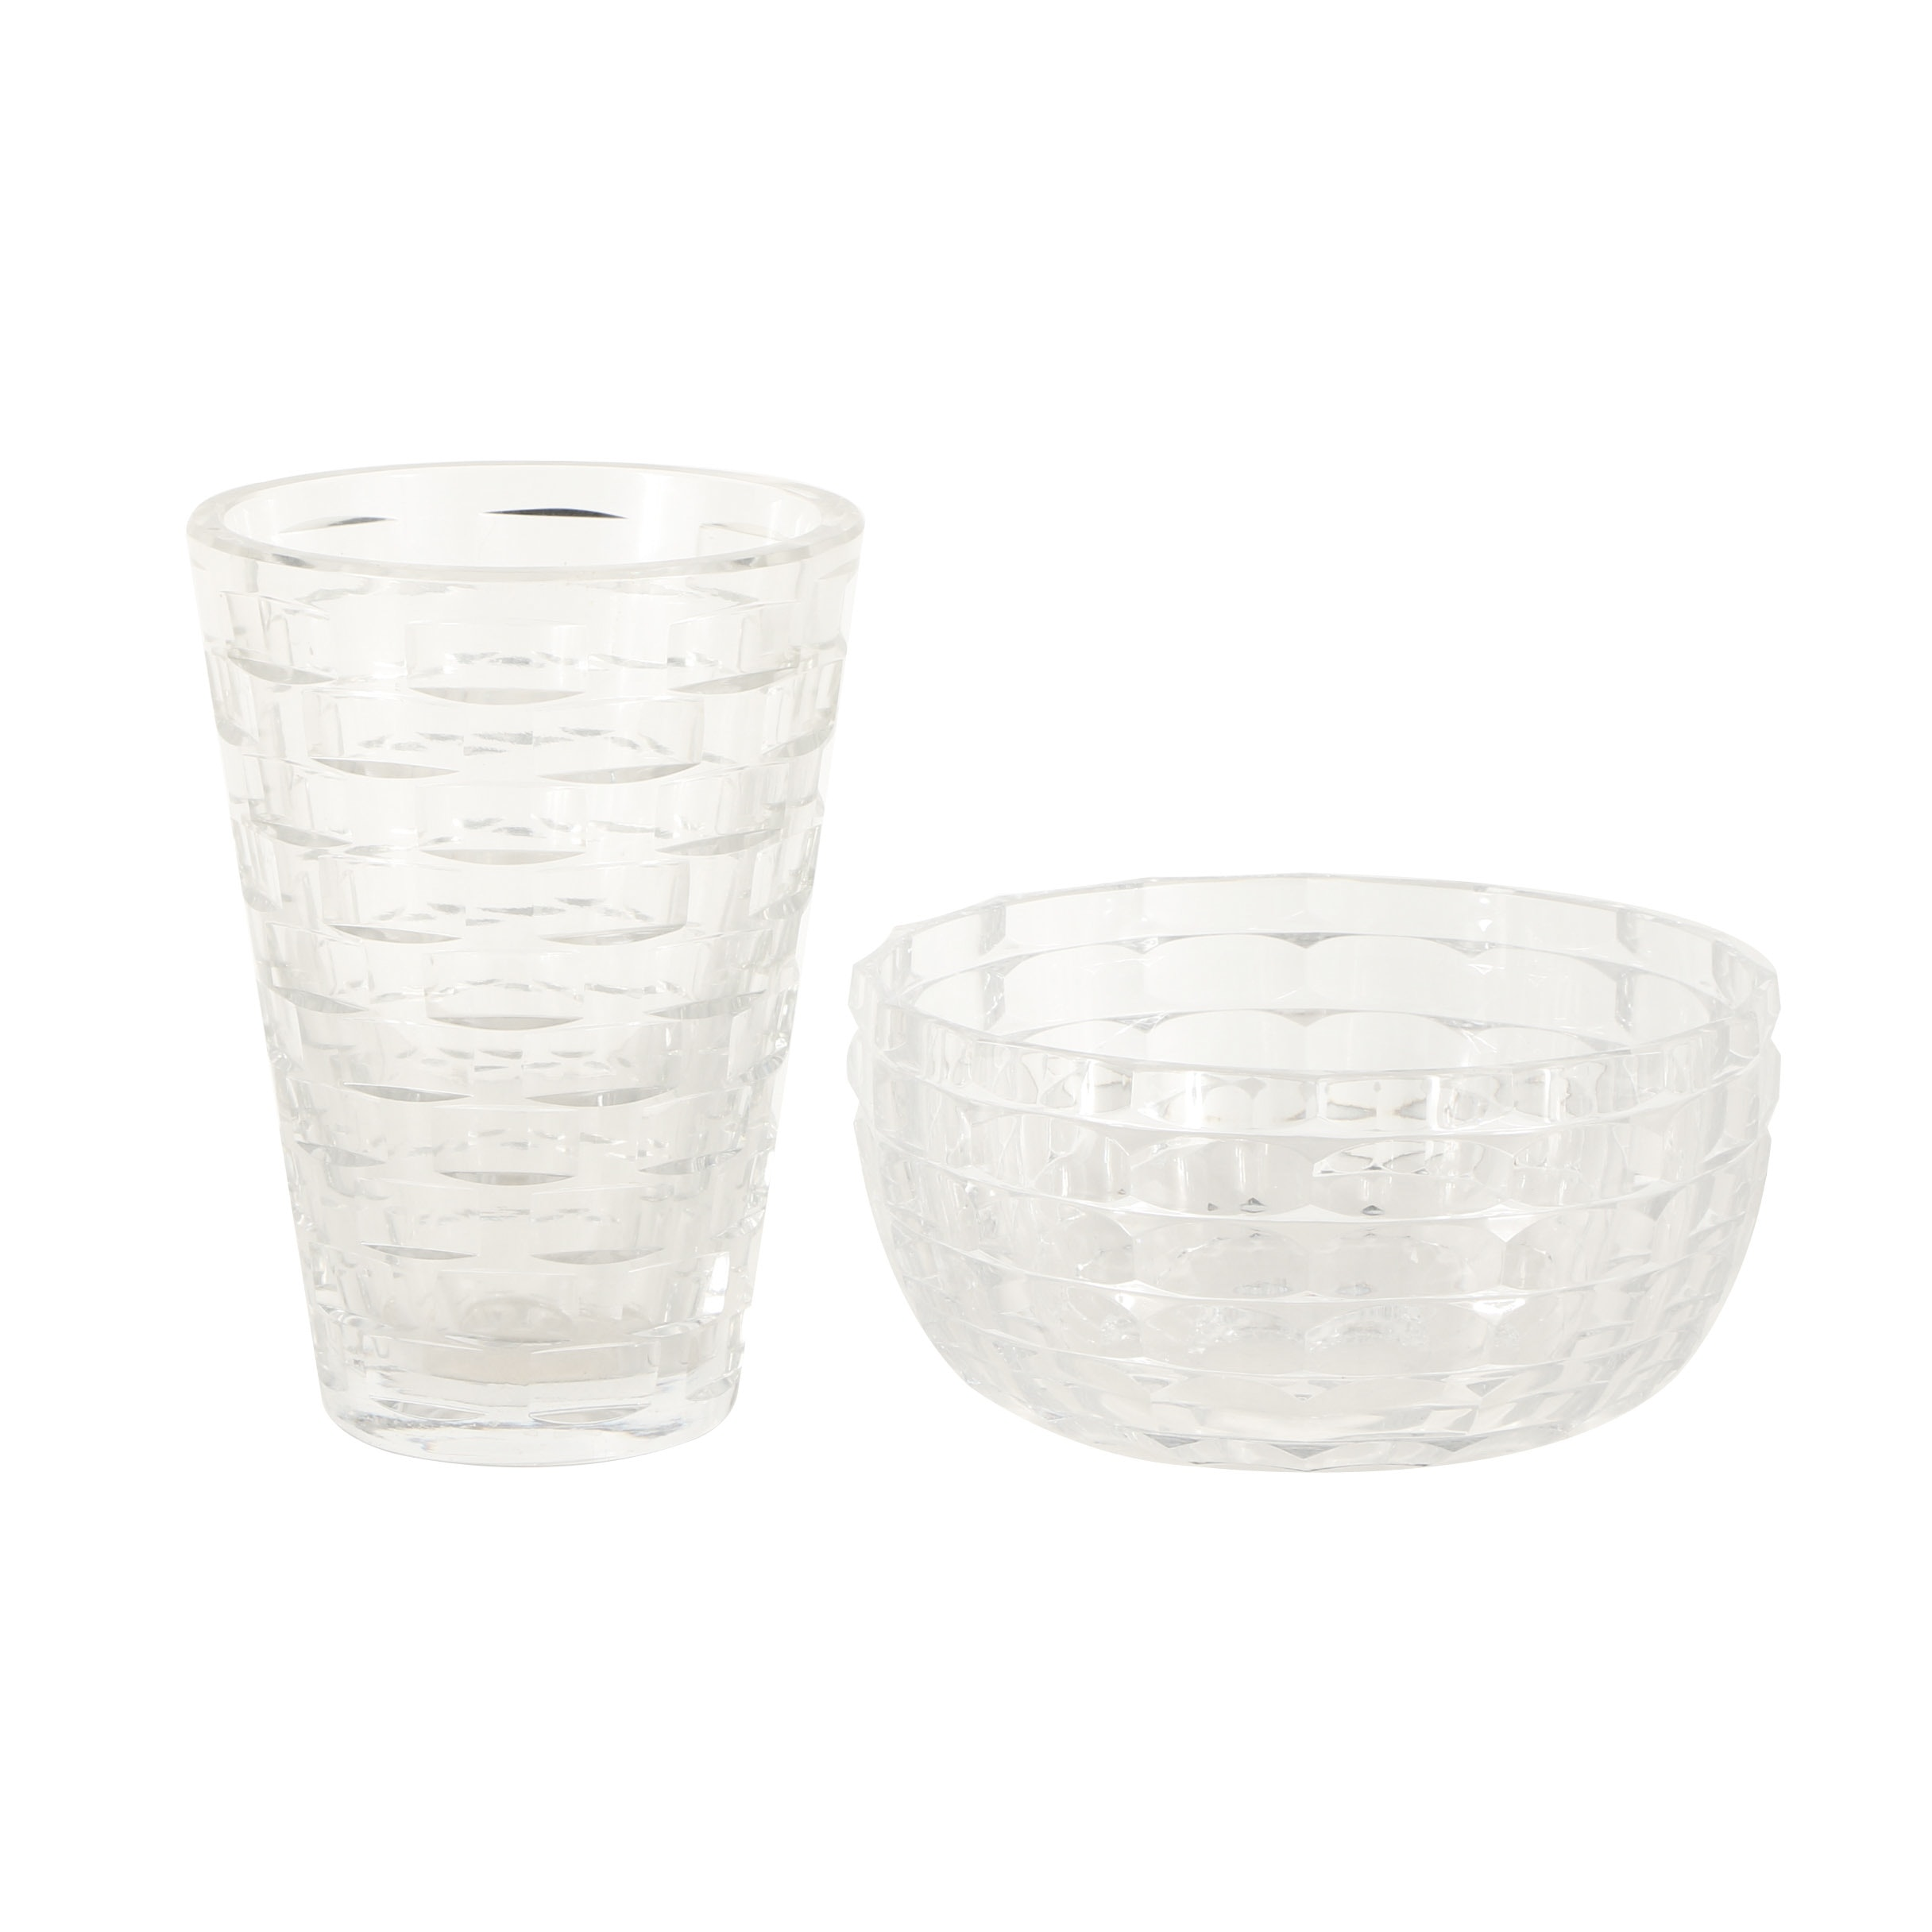 Glass Vase and Bowl Basket Weave Design